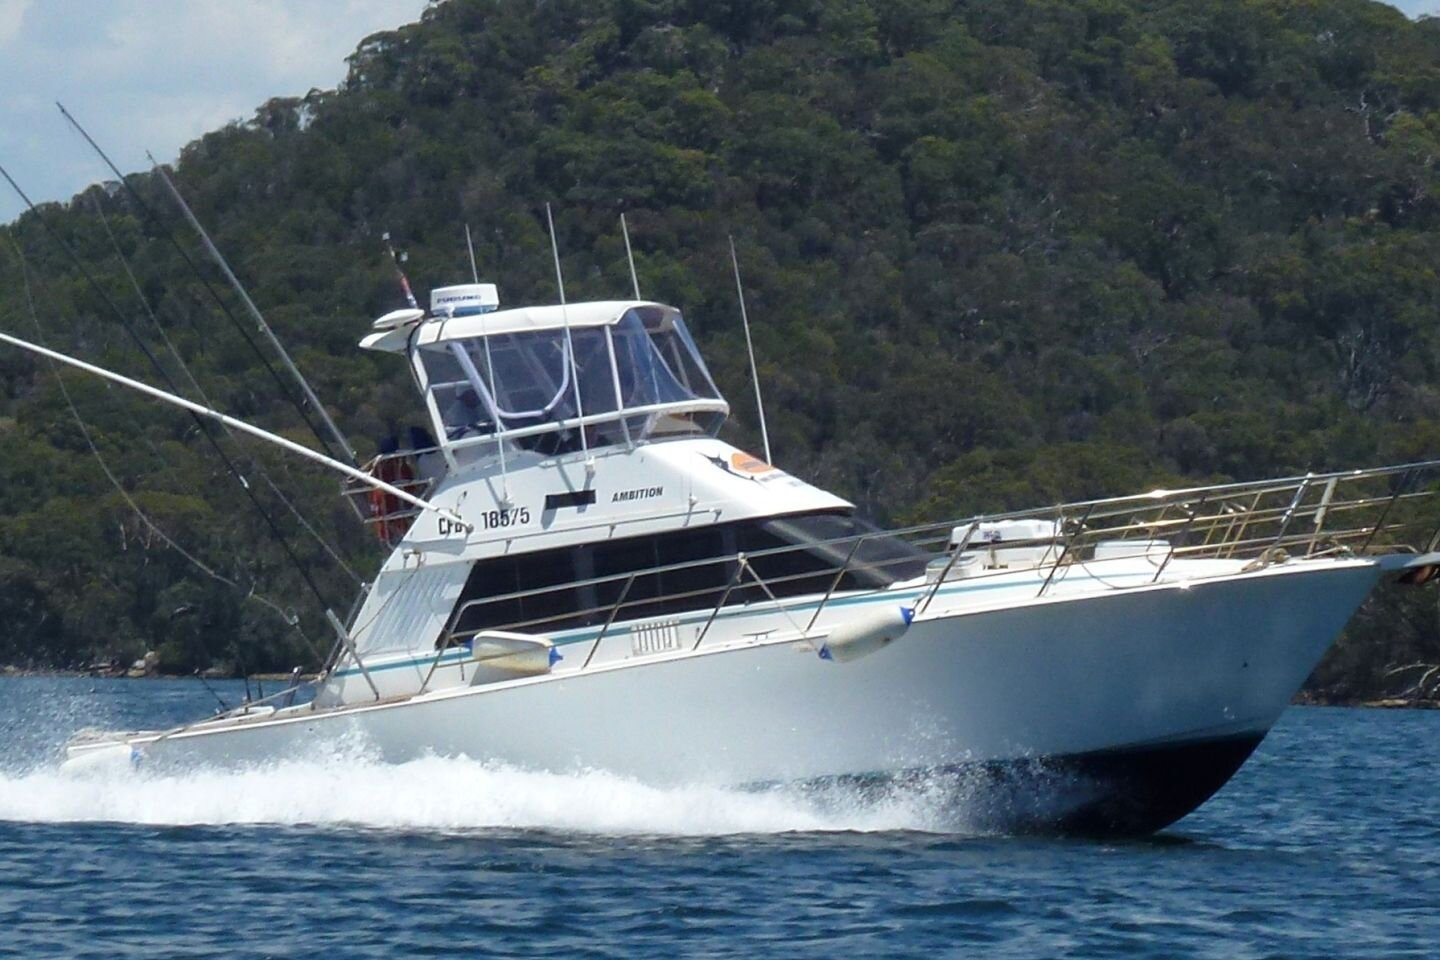 Ambition - Purpose built game fishing and harbour cruise boat.